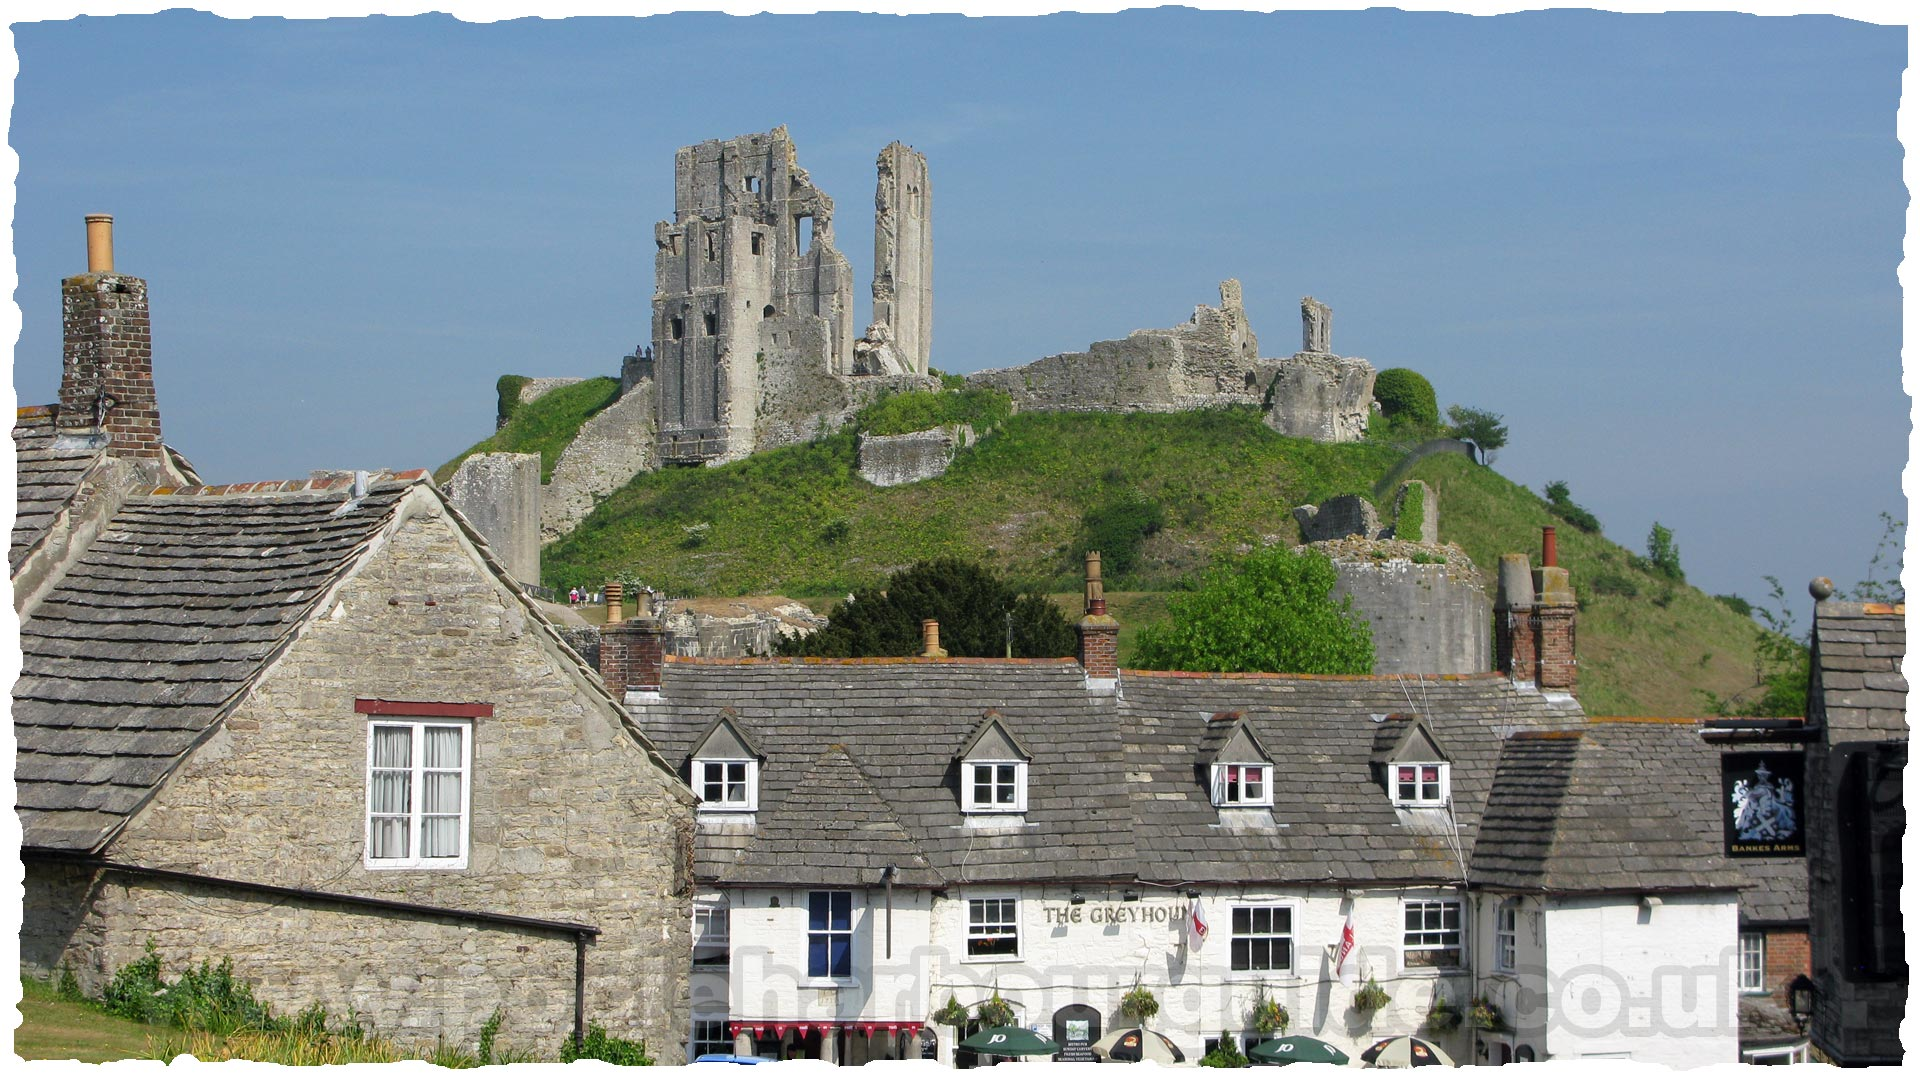 Corfe Castle Corfe Castle, The Greyhound Inn, Corfe Castle